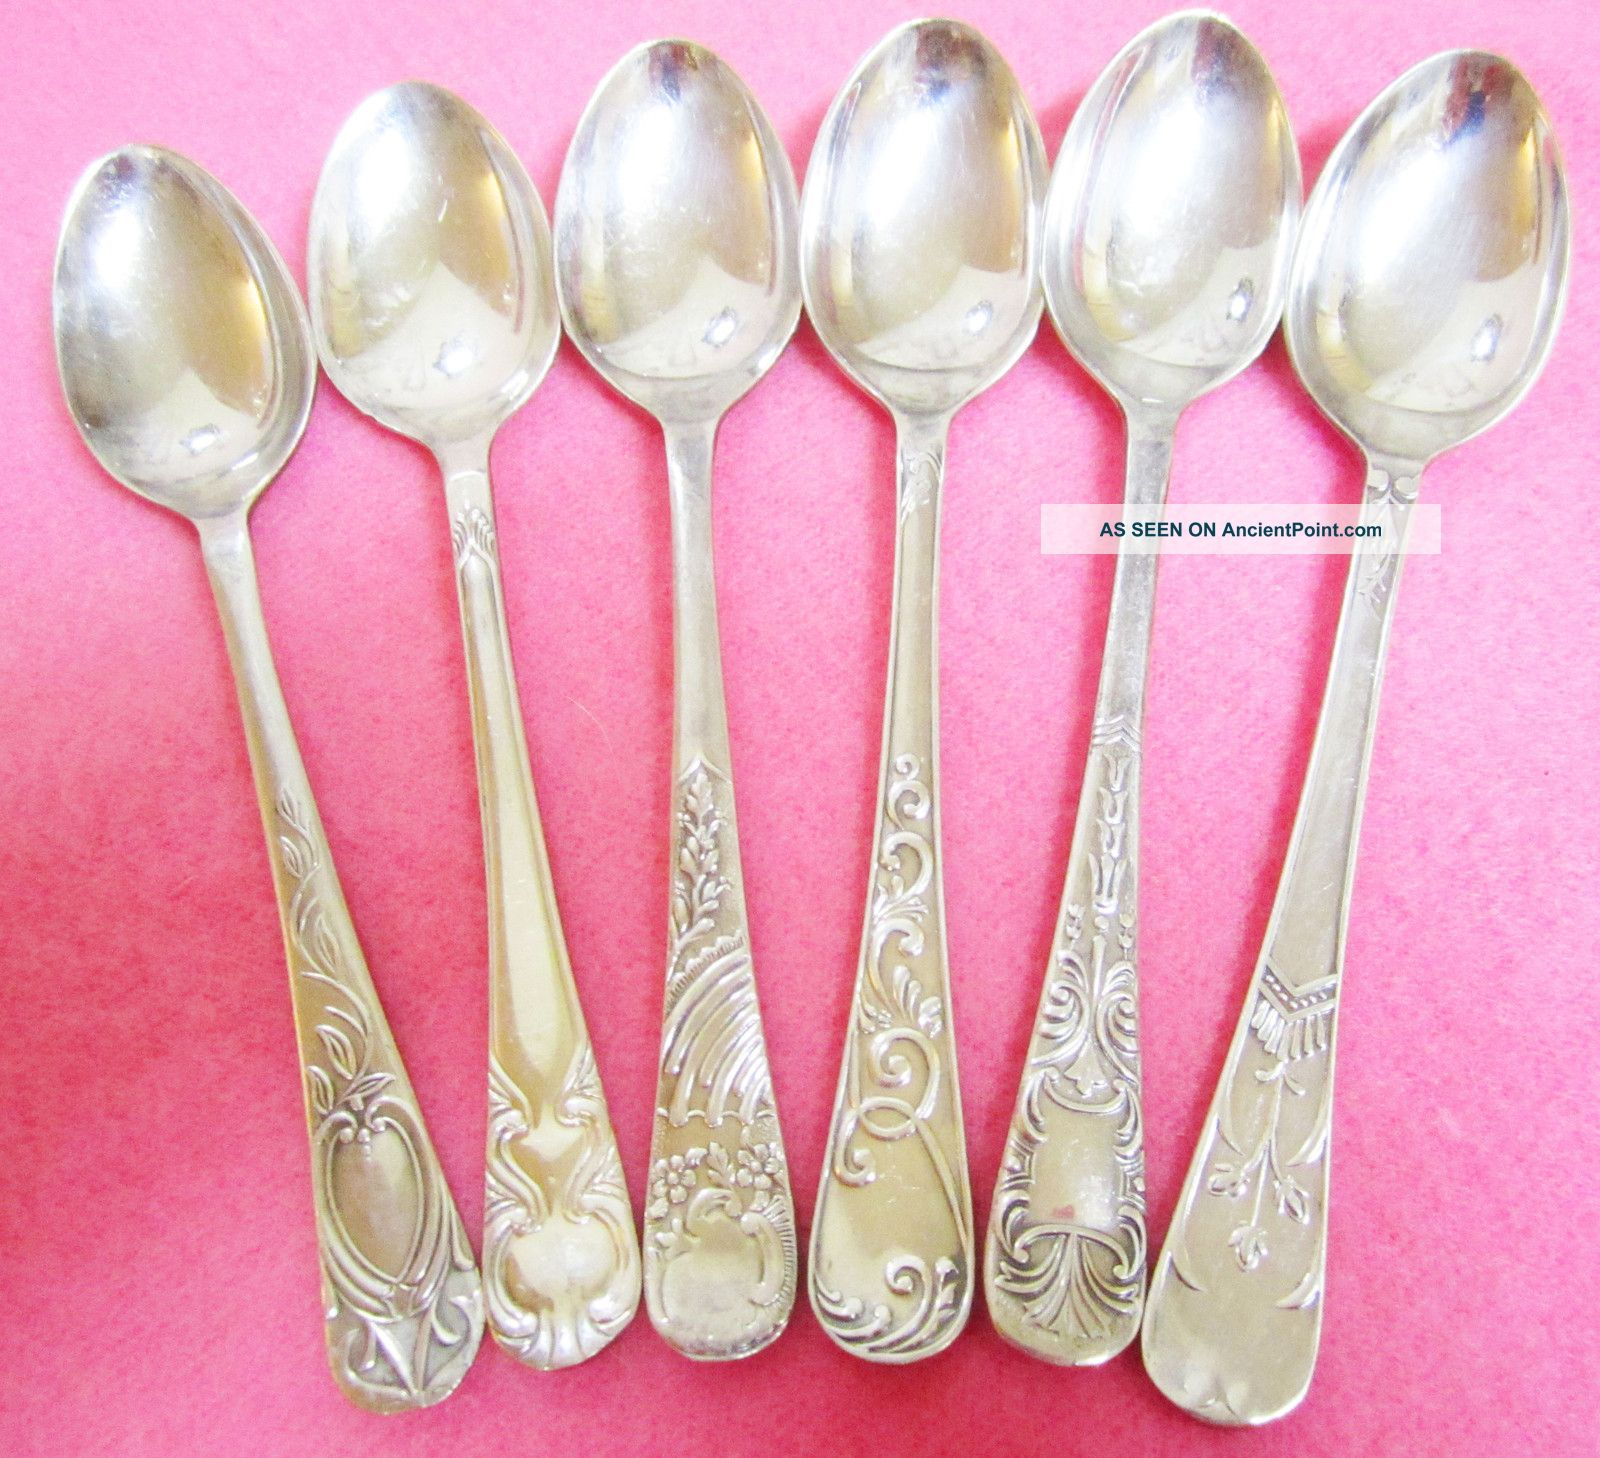 6 English Demitasse Spoons Vintage - Antique Silverware - Flatware Other photo